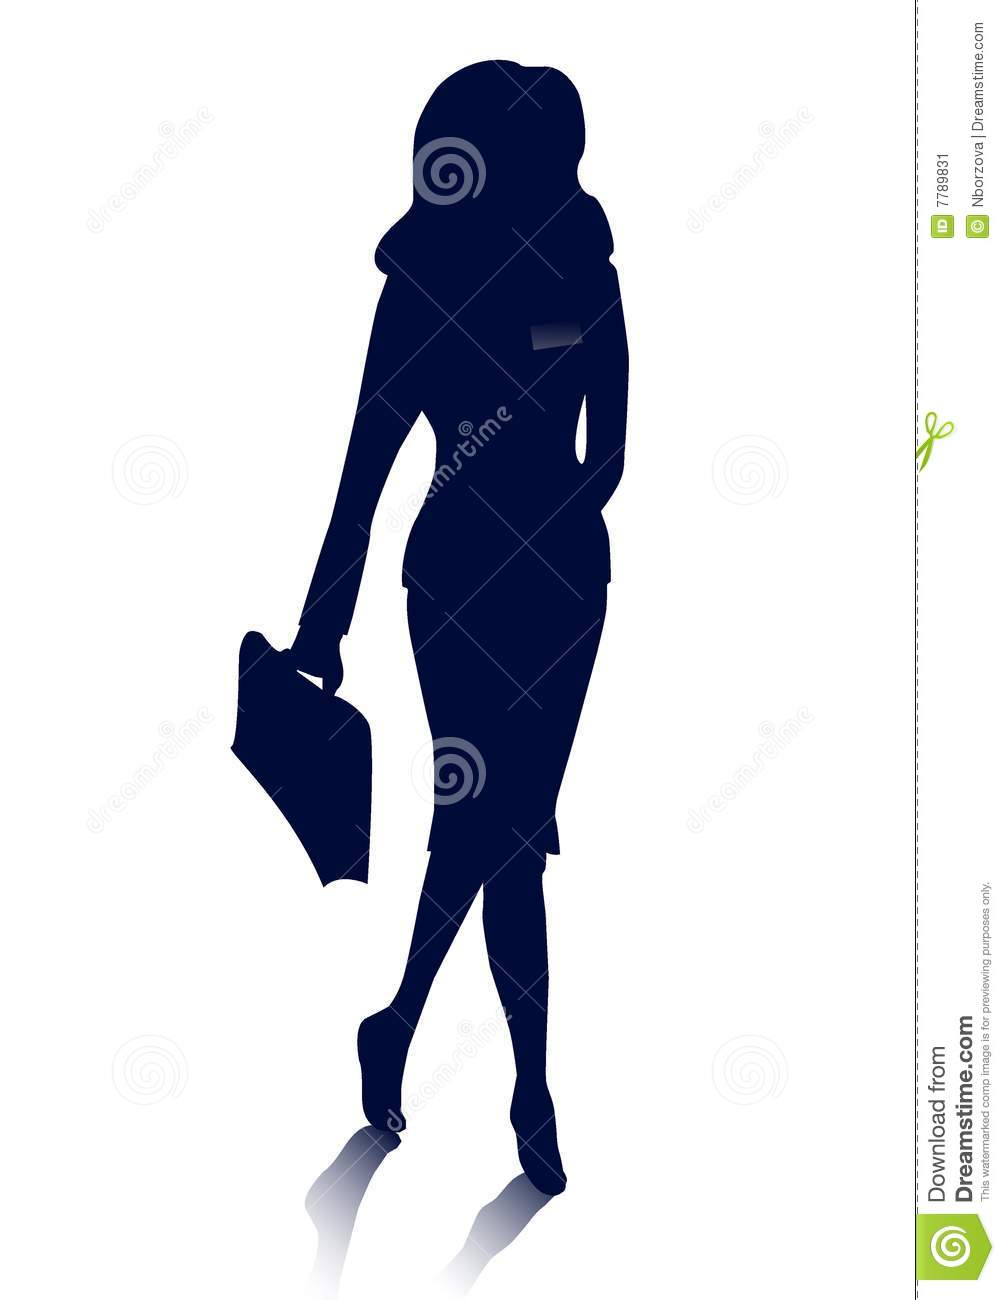 Businesswoman Silhouette Stock Image   Image  7789831